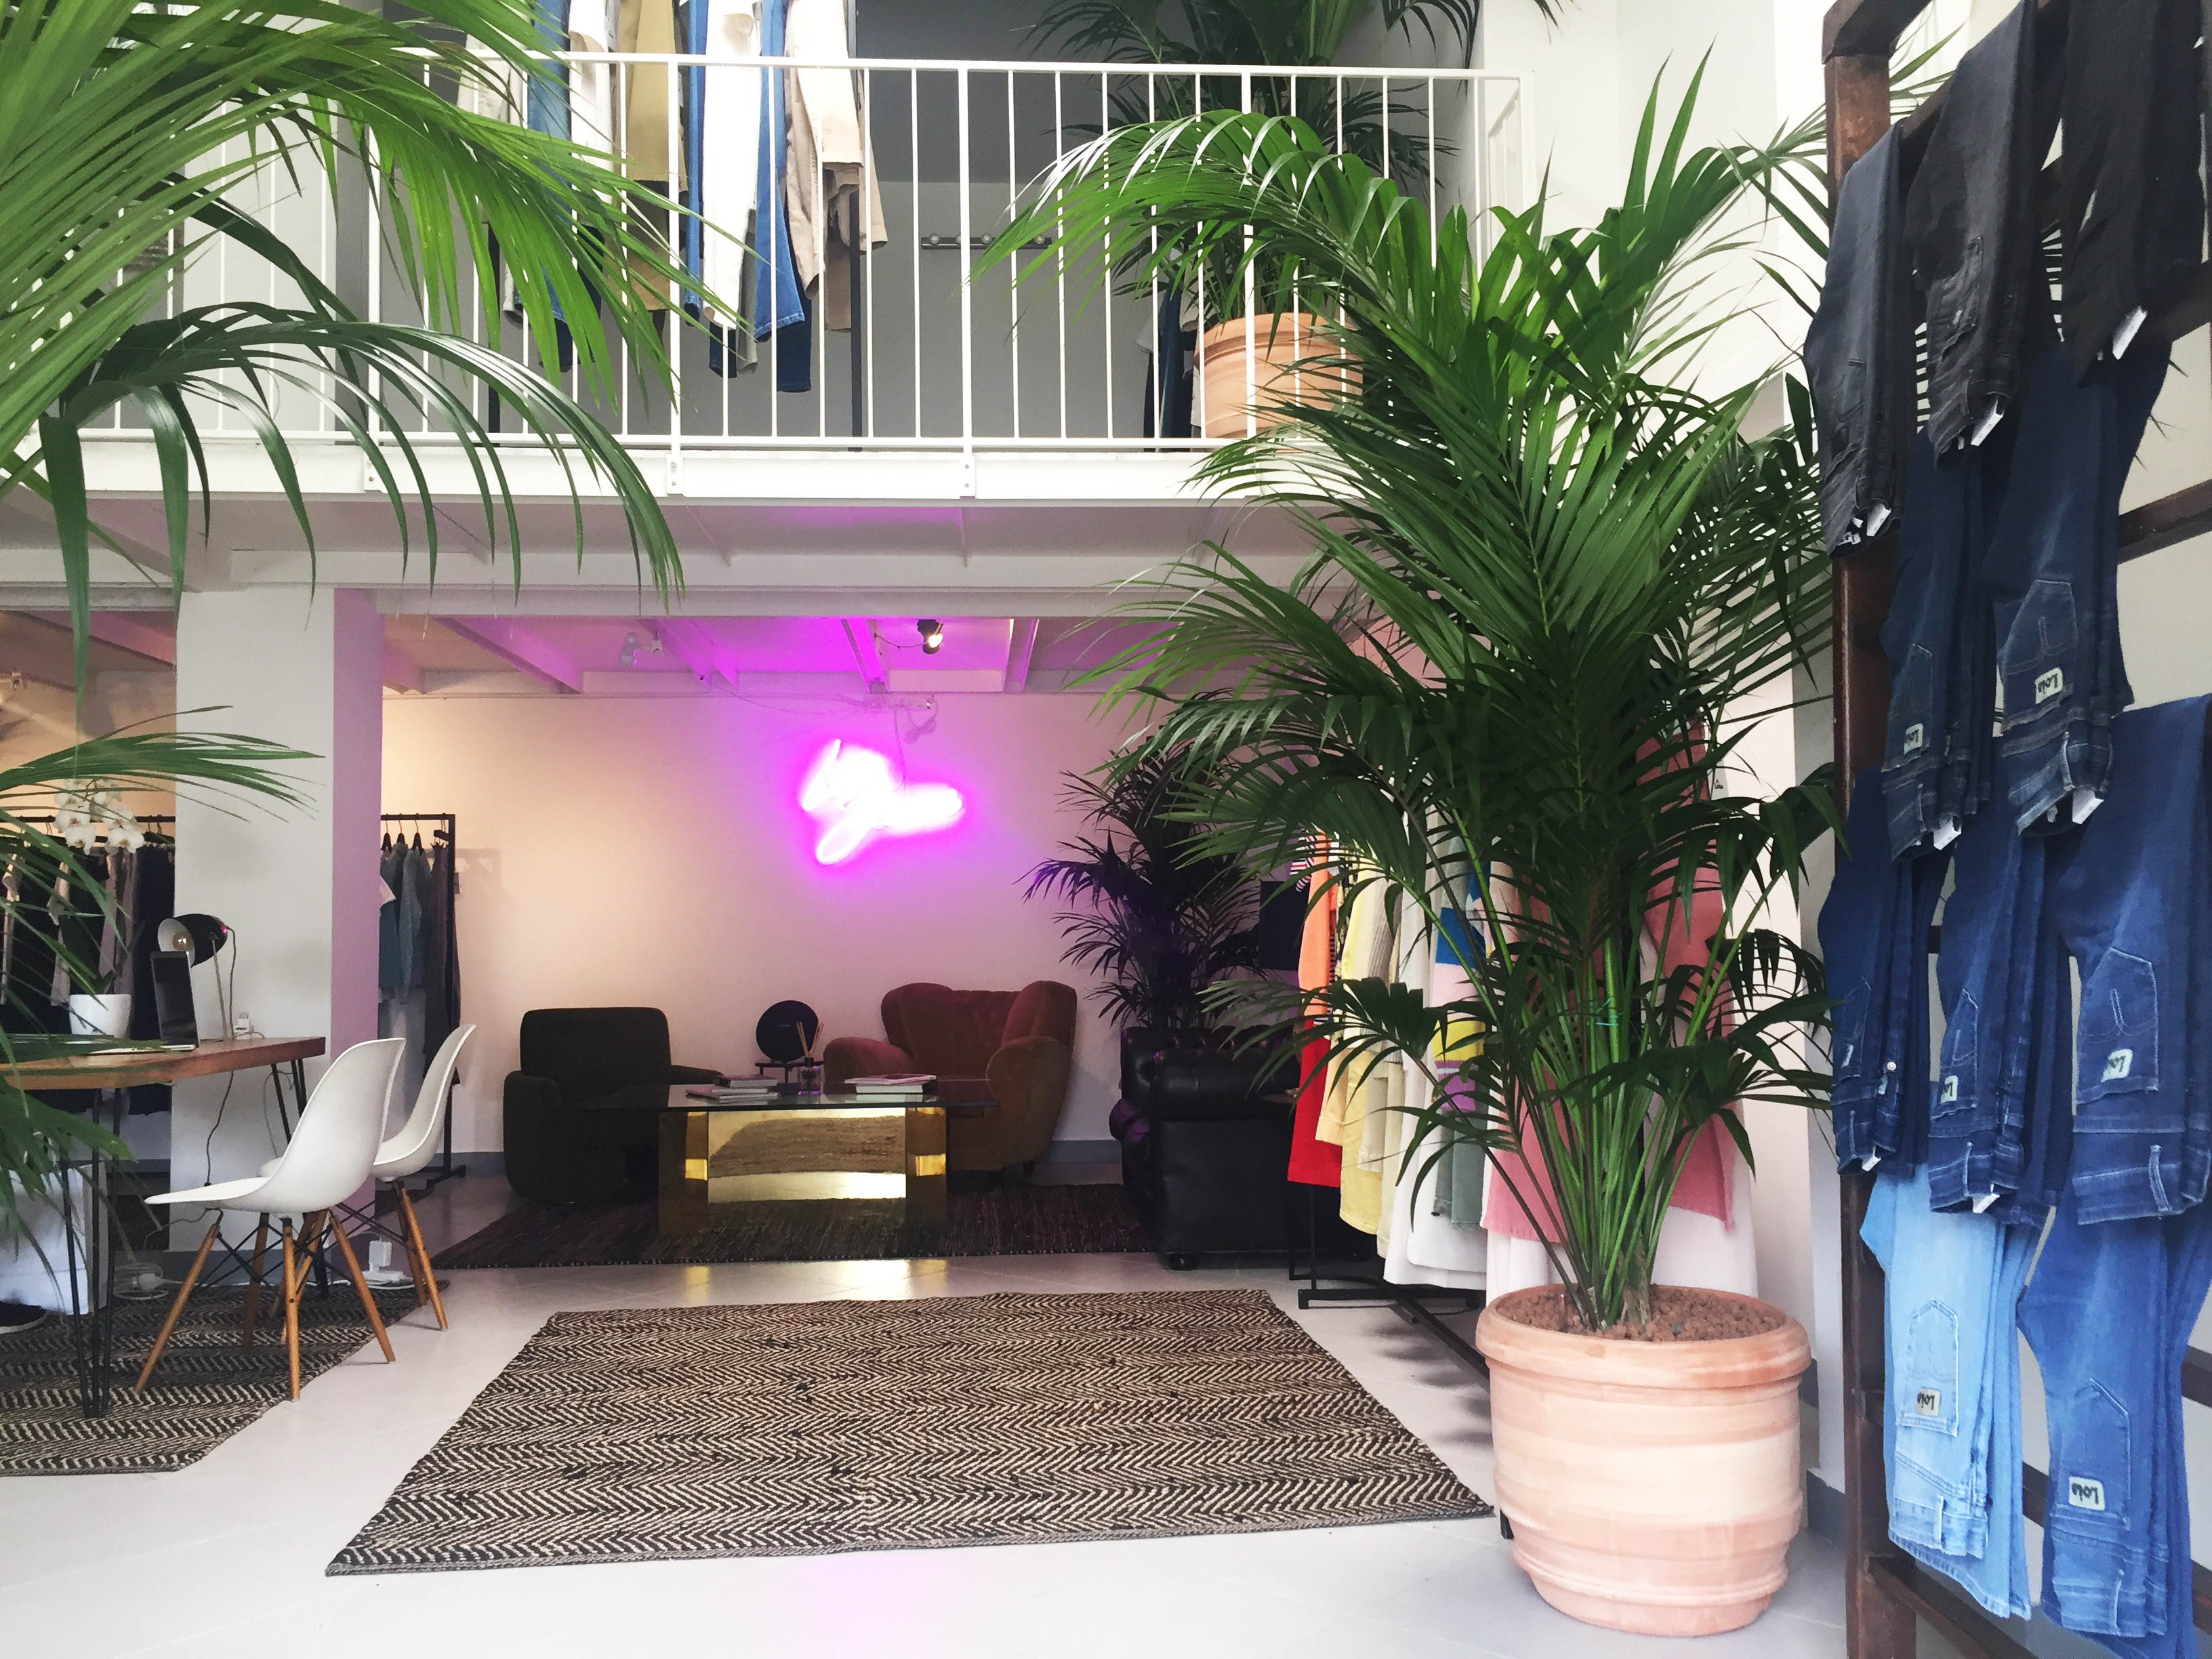 Opificio 31-Arcon - Loft, Open space, Showroom di 50mq in Via Tortona 31 | location allestita 7